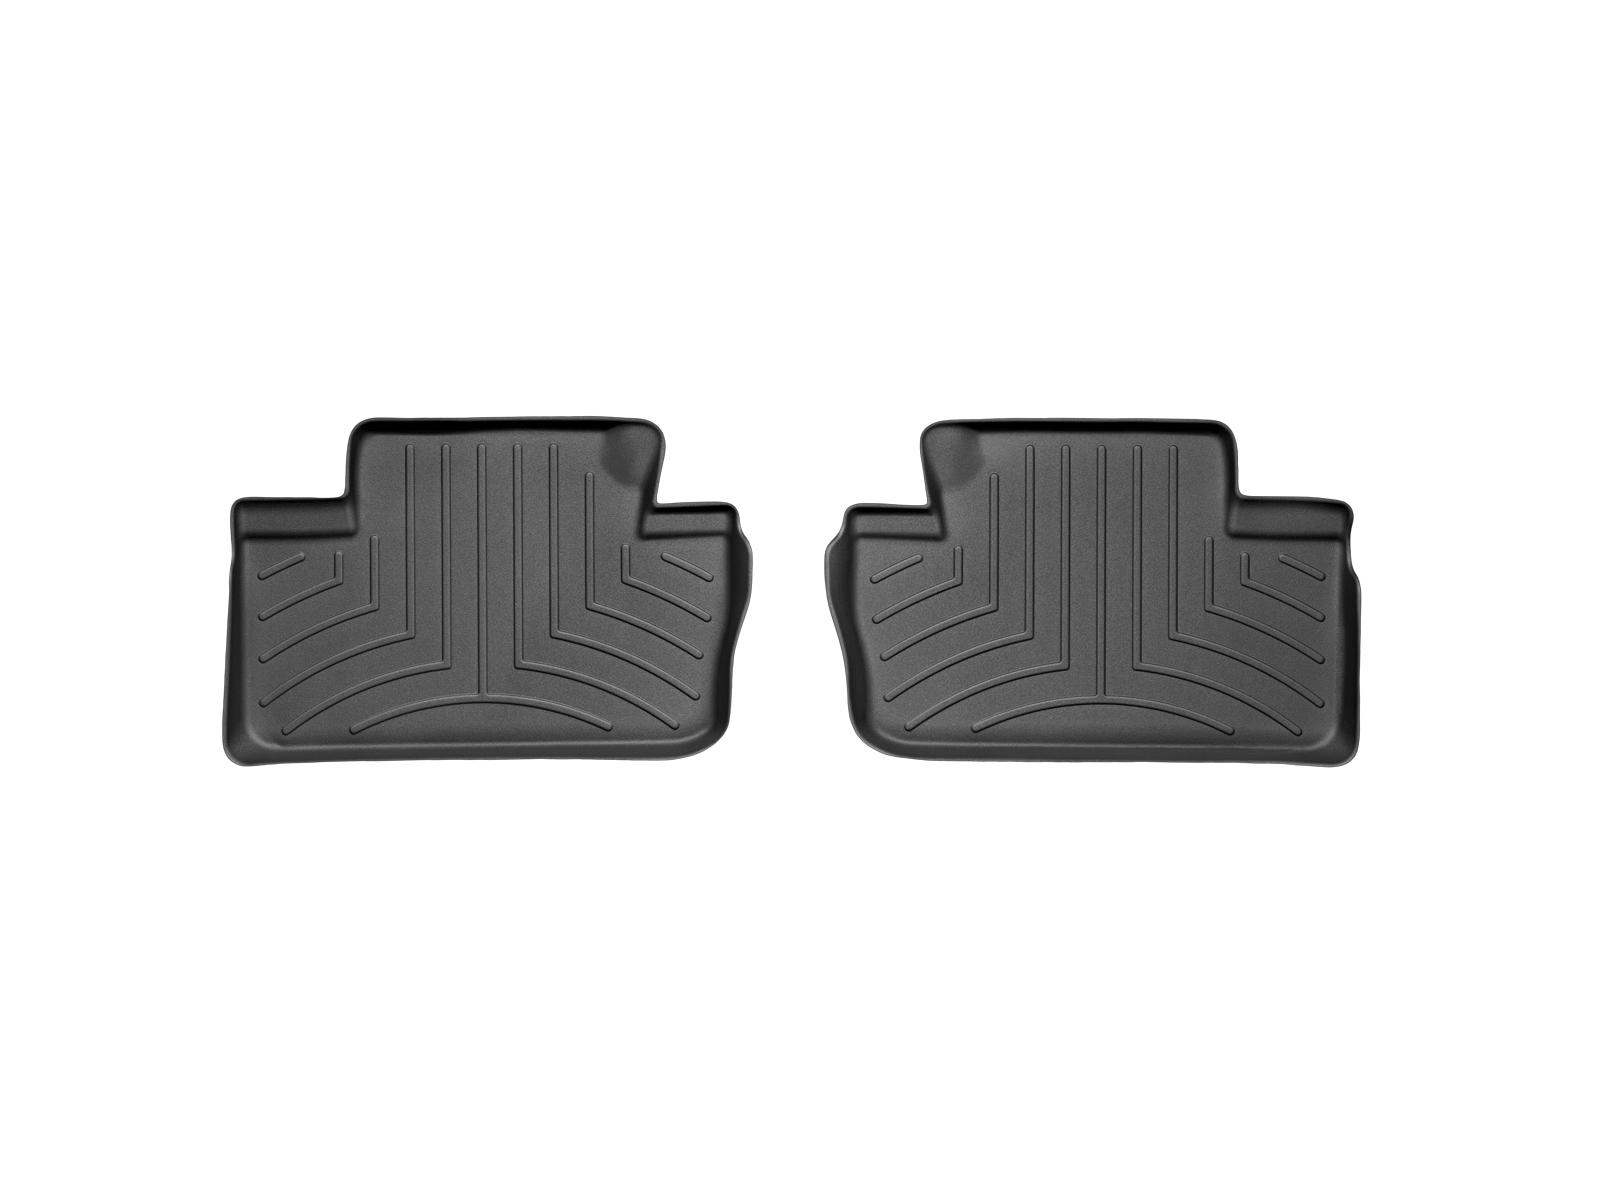 Tappeti gomma Weathertech bordo alto Lexus IS 05>10 Nero A2043